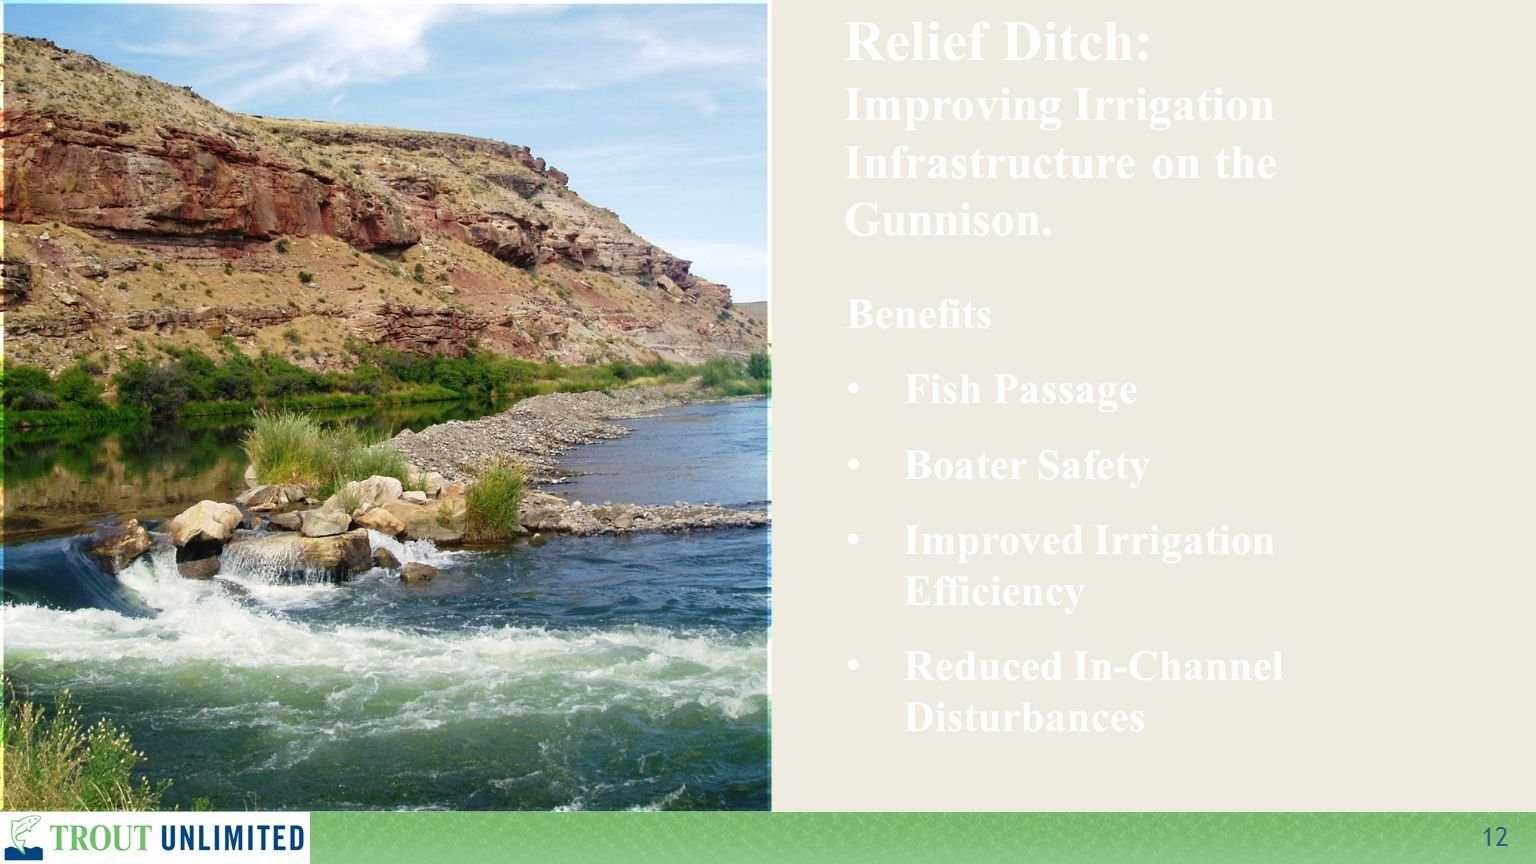 12 Relief Ditch: Improving Irrigation Infrastructure on the Gunnison.